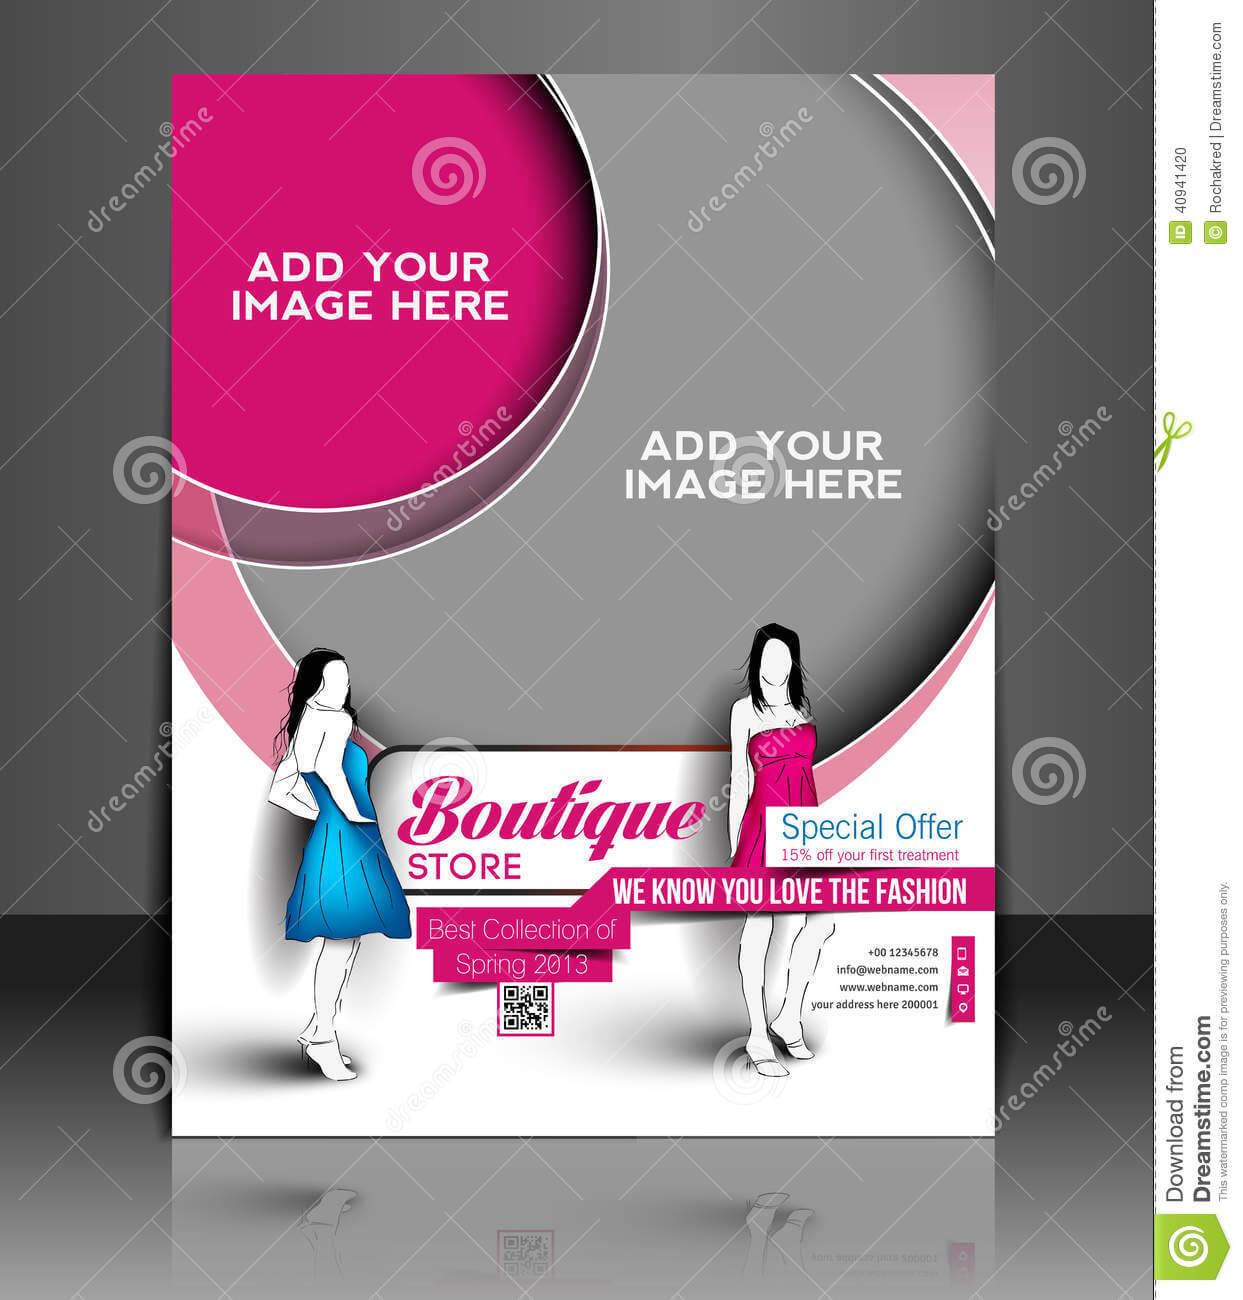 Boutique Store Flyer Stock Vector. Illustration Of Banner With Regard To Boutique Flyer Template Free